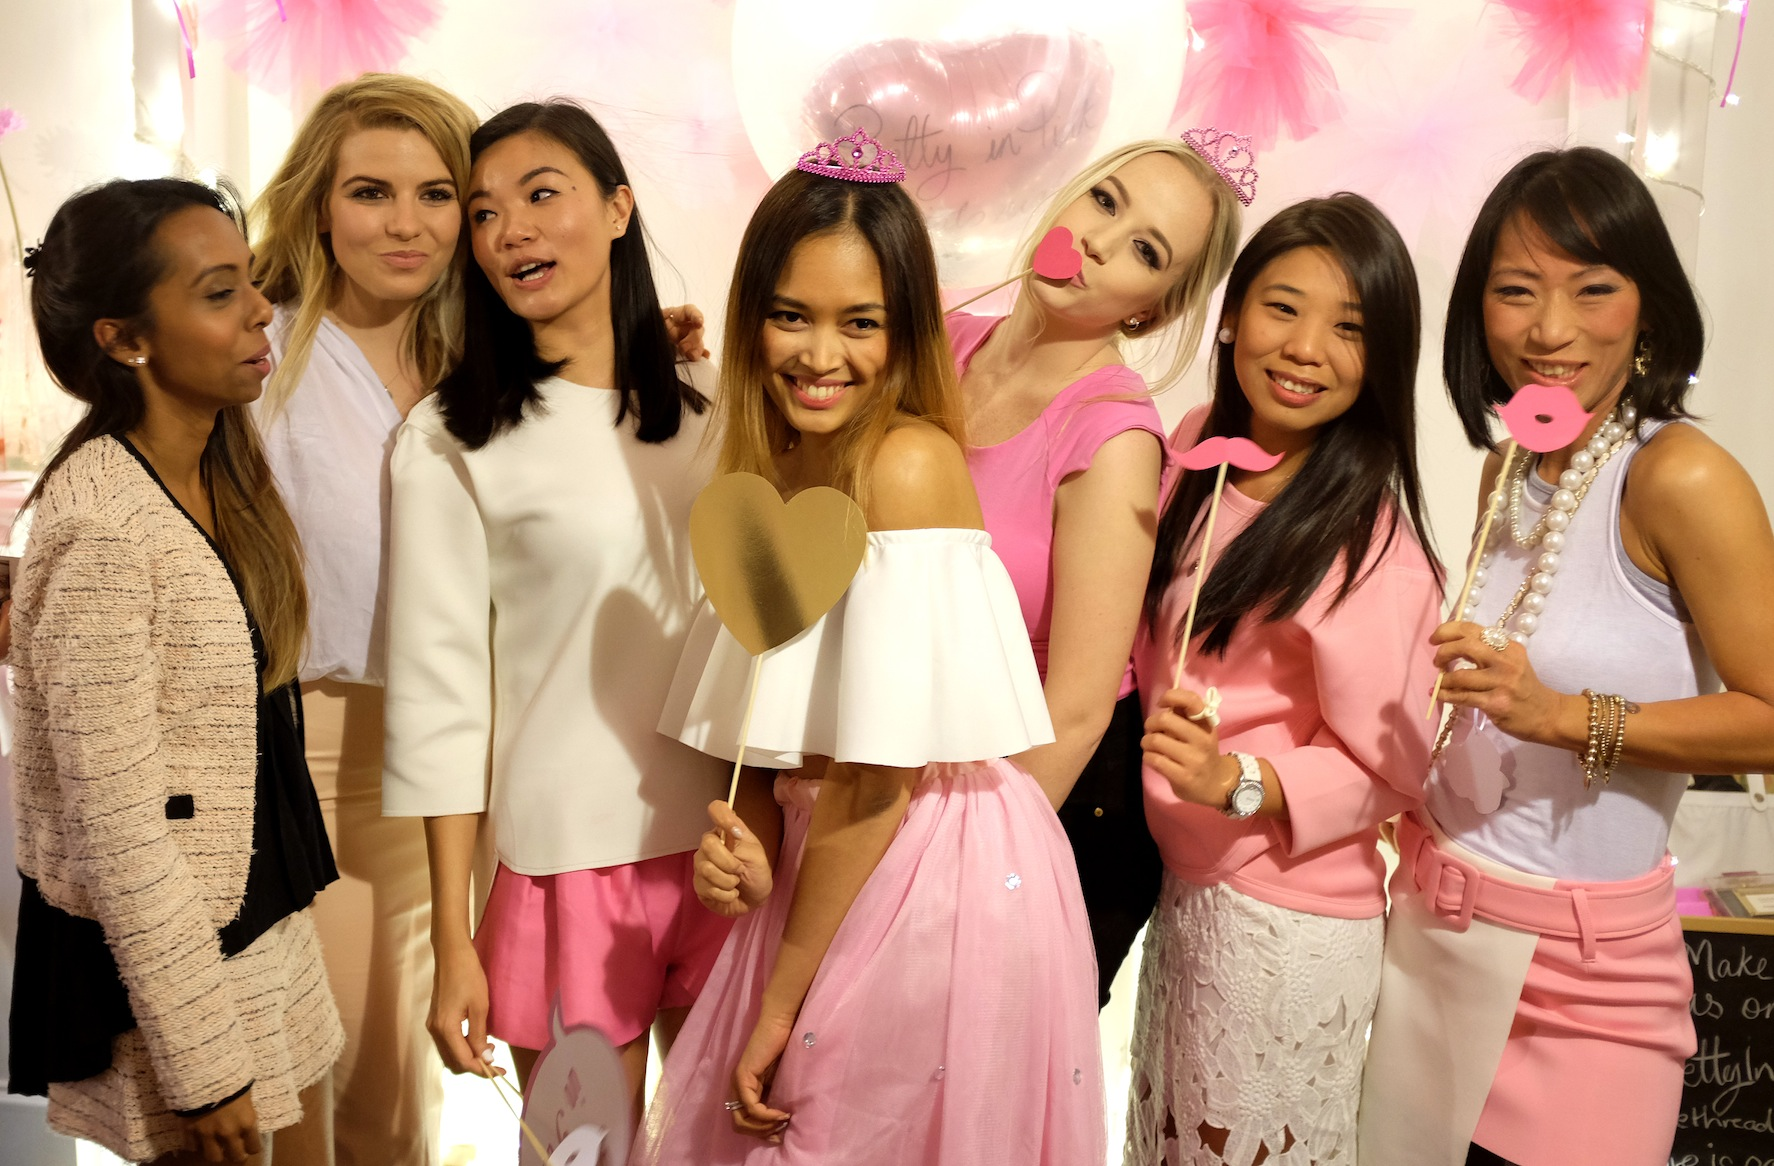 pretty_in_pink_girls_night_out_21